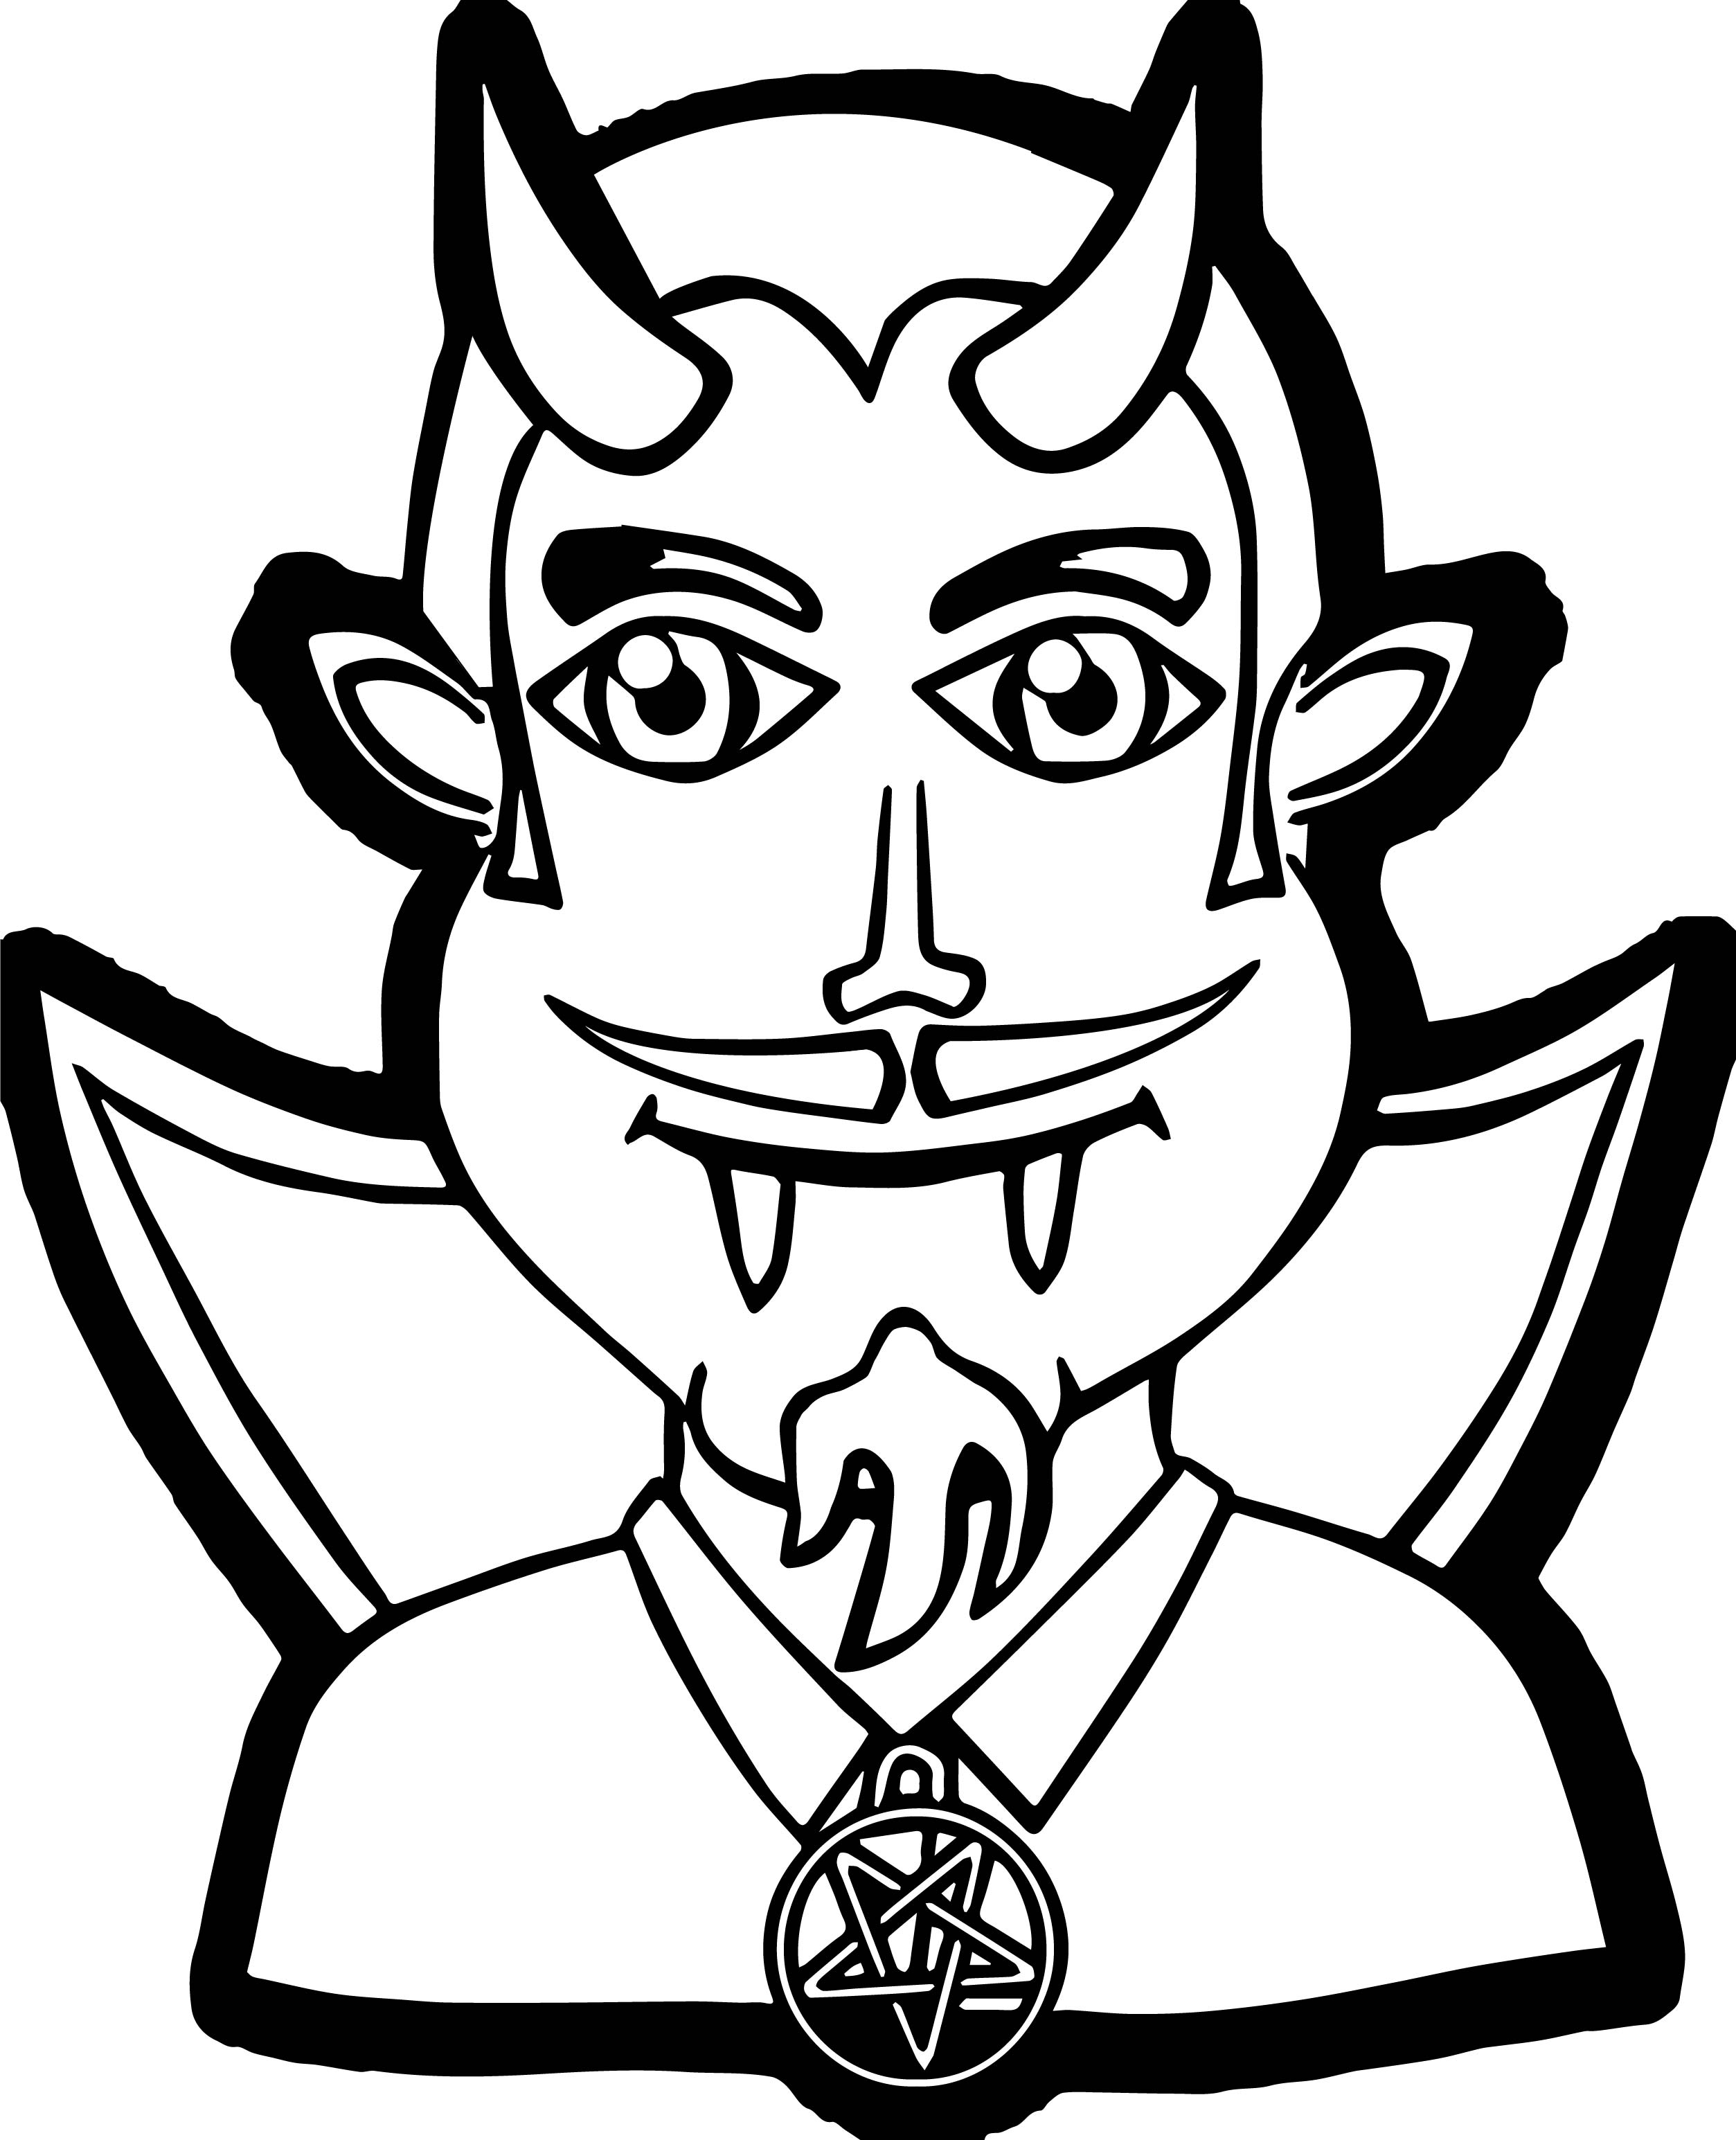 Bearded Whiskered Vampire Man Coloring Page